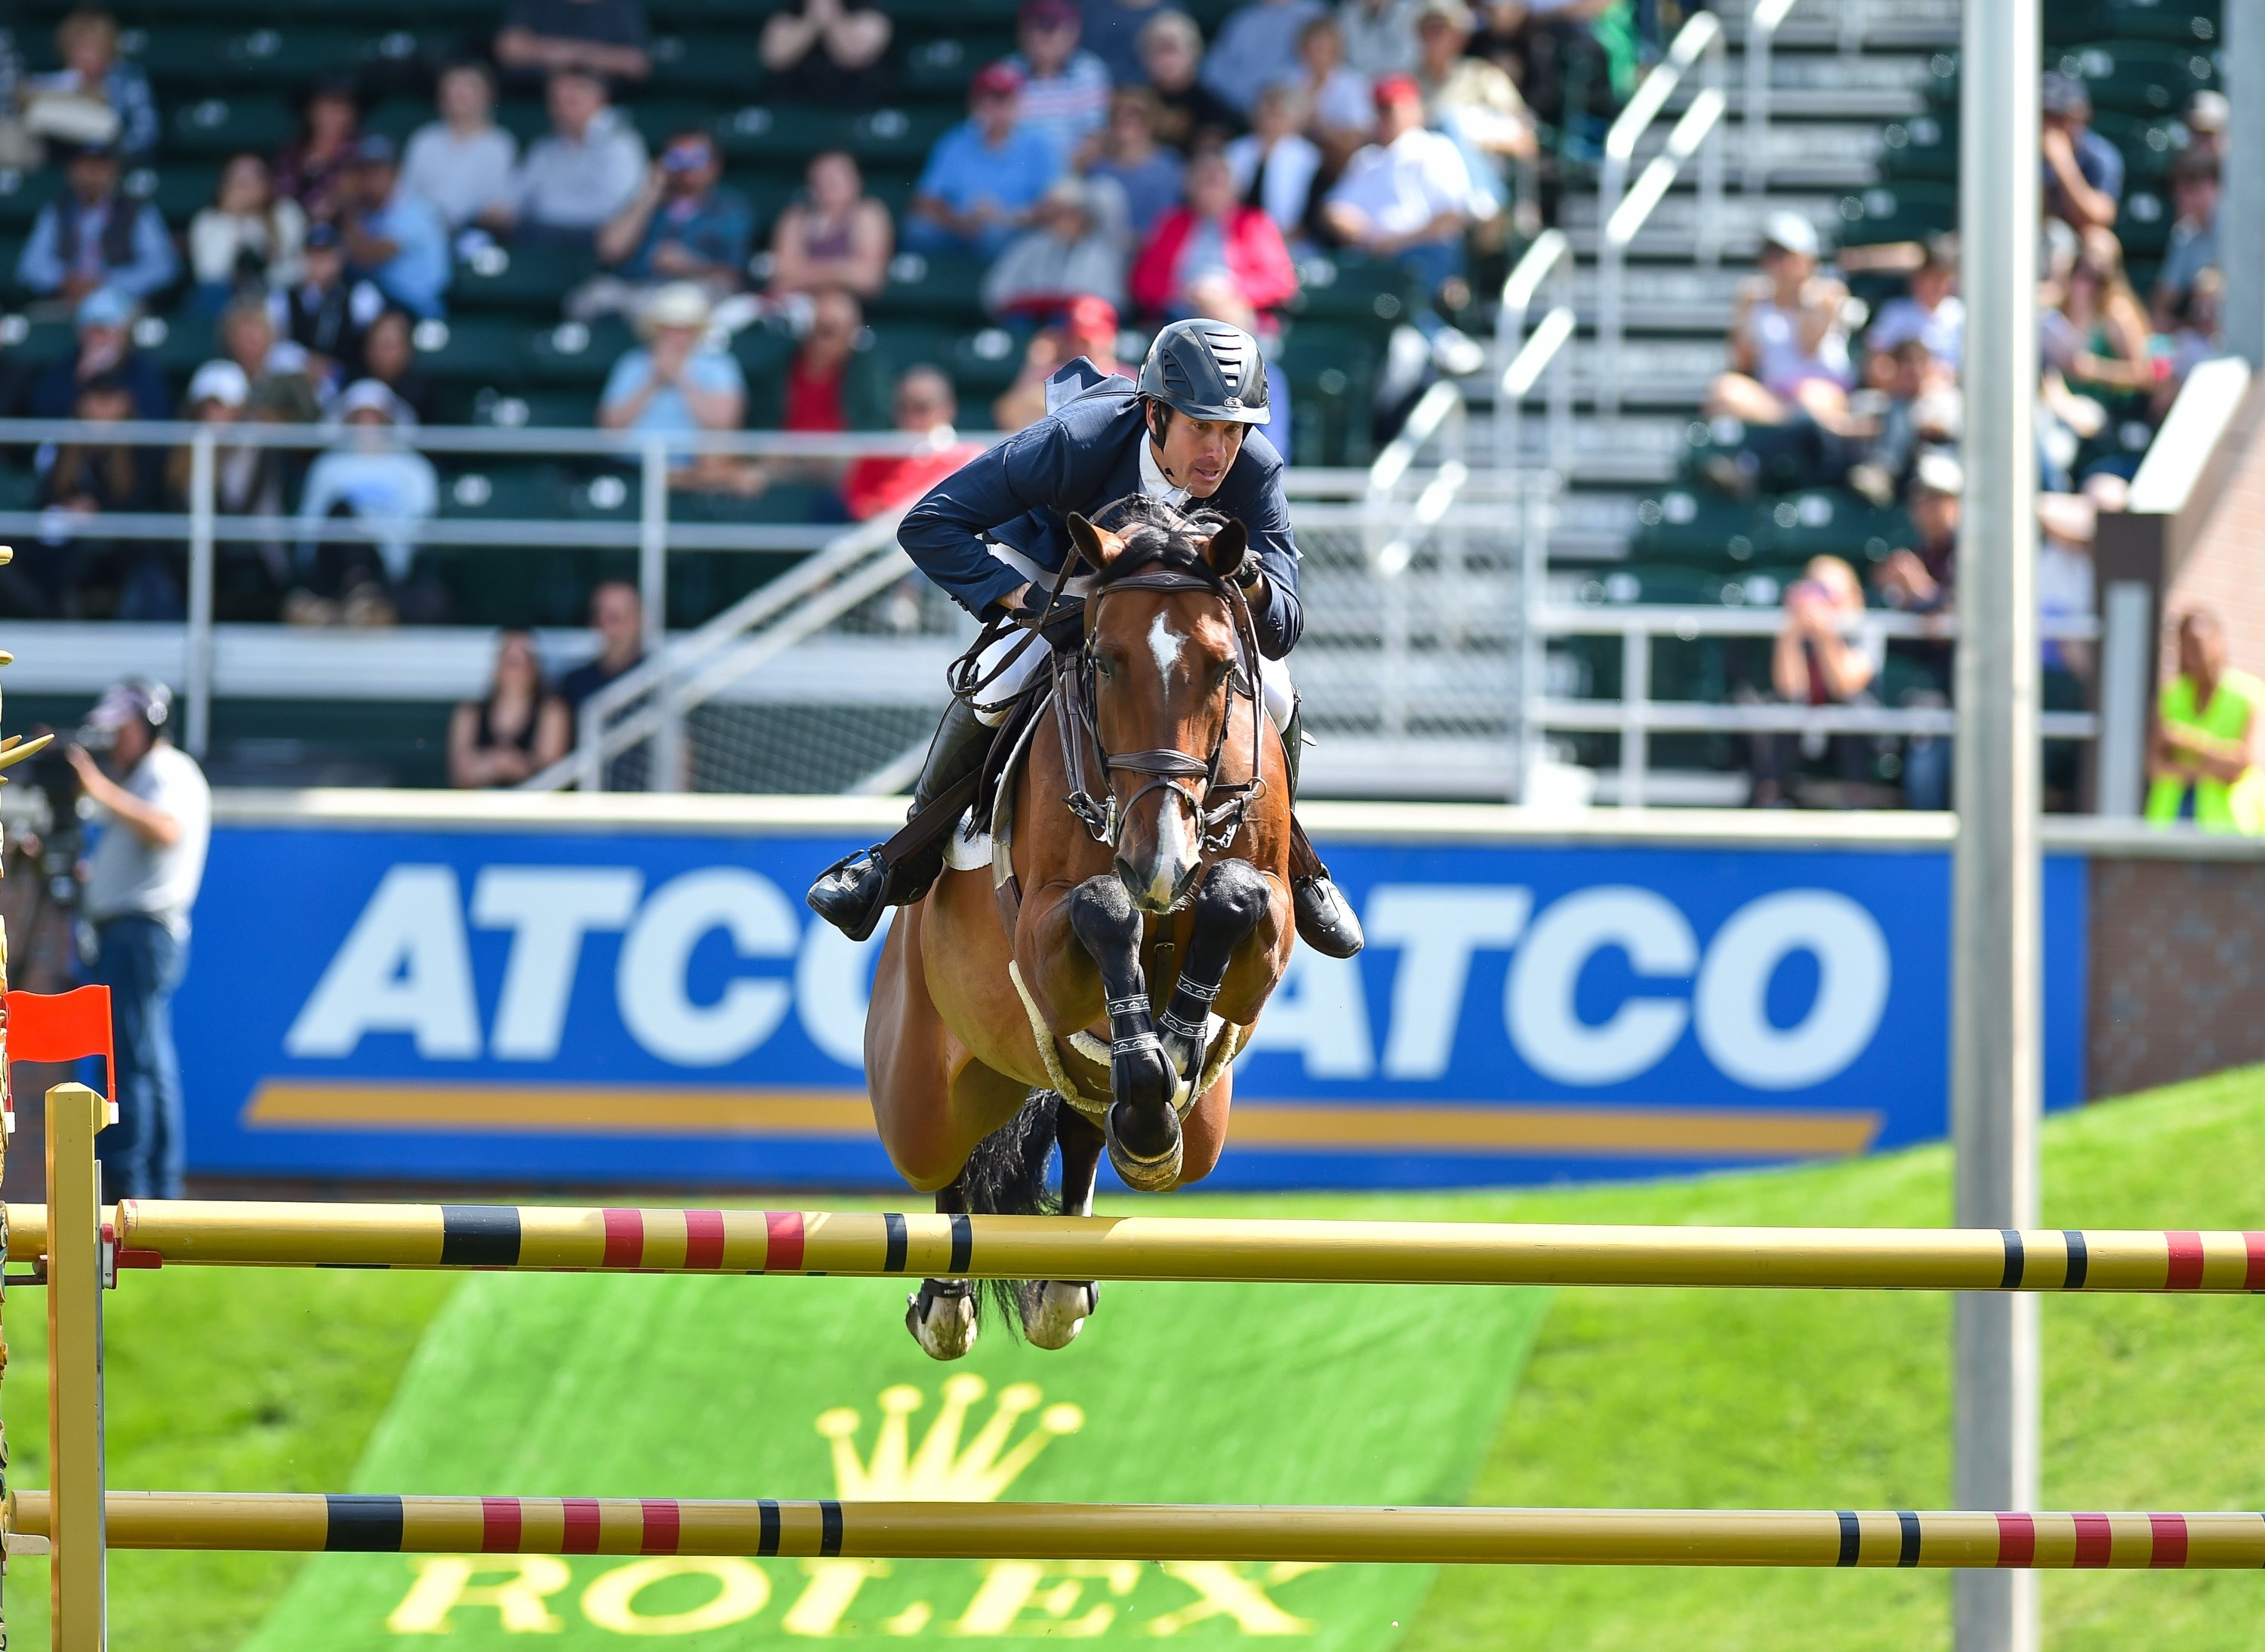 FEI examining Show Jumper Andrew Kocher's Conduct at Spruce Meadows